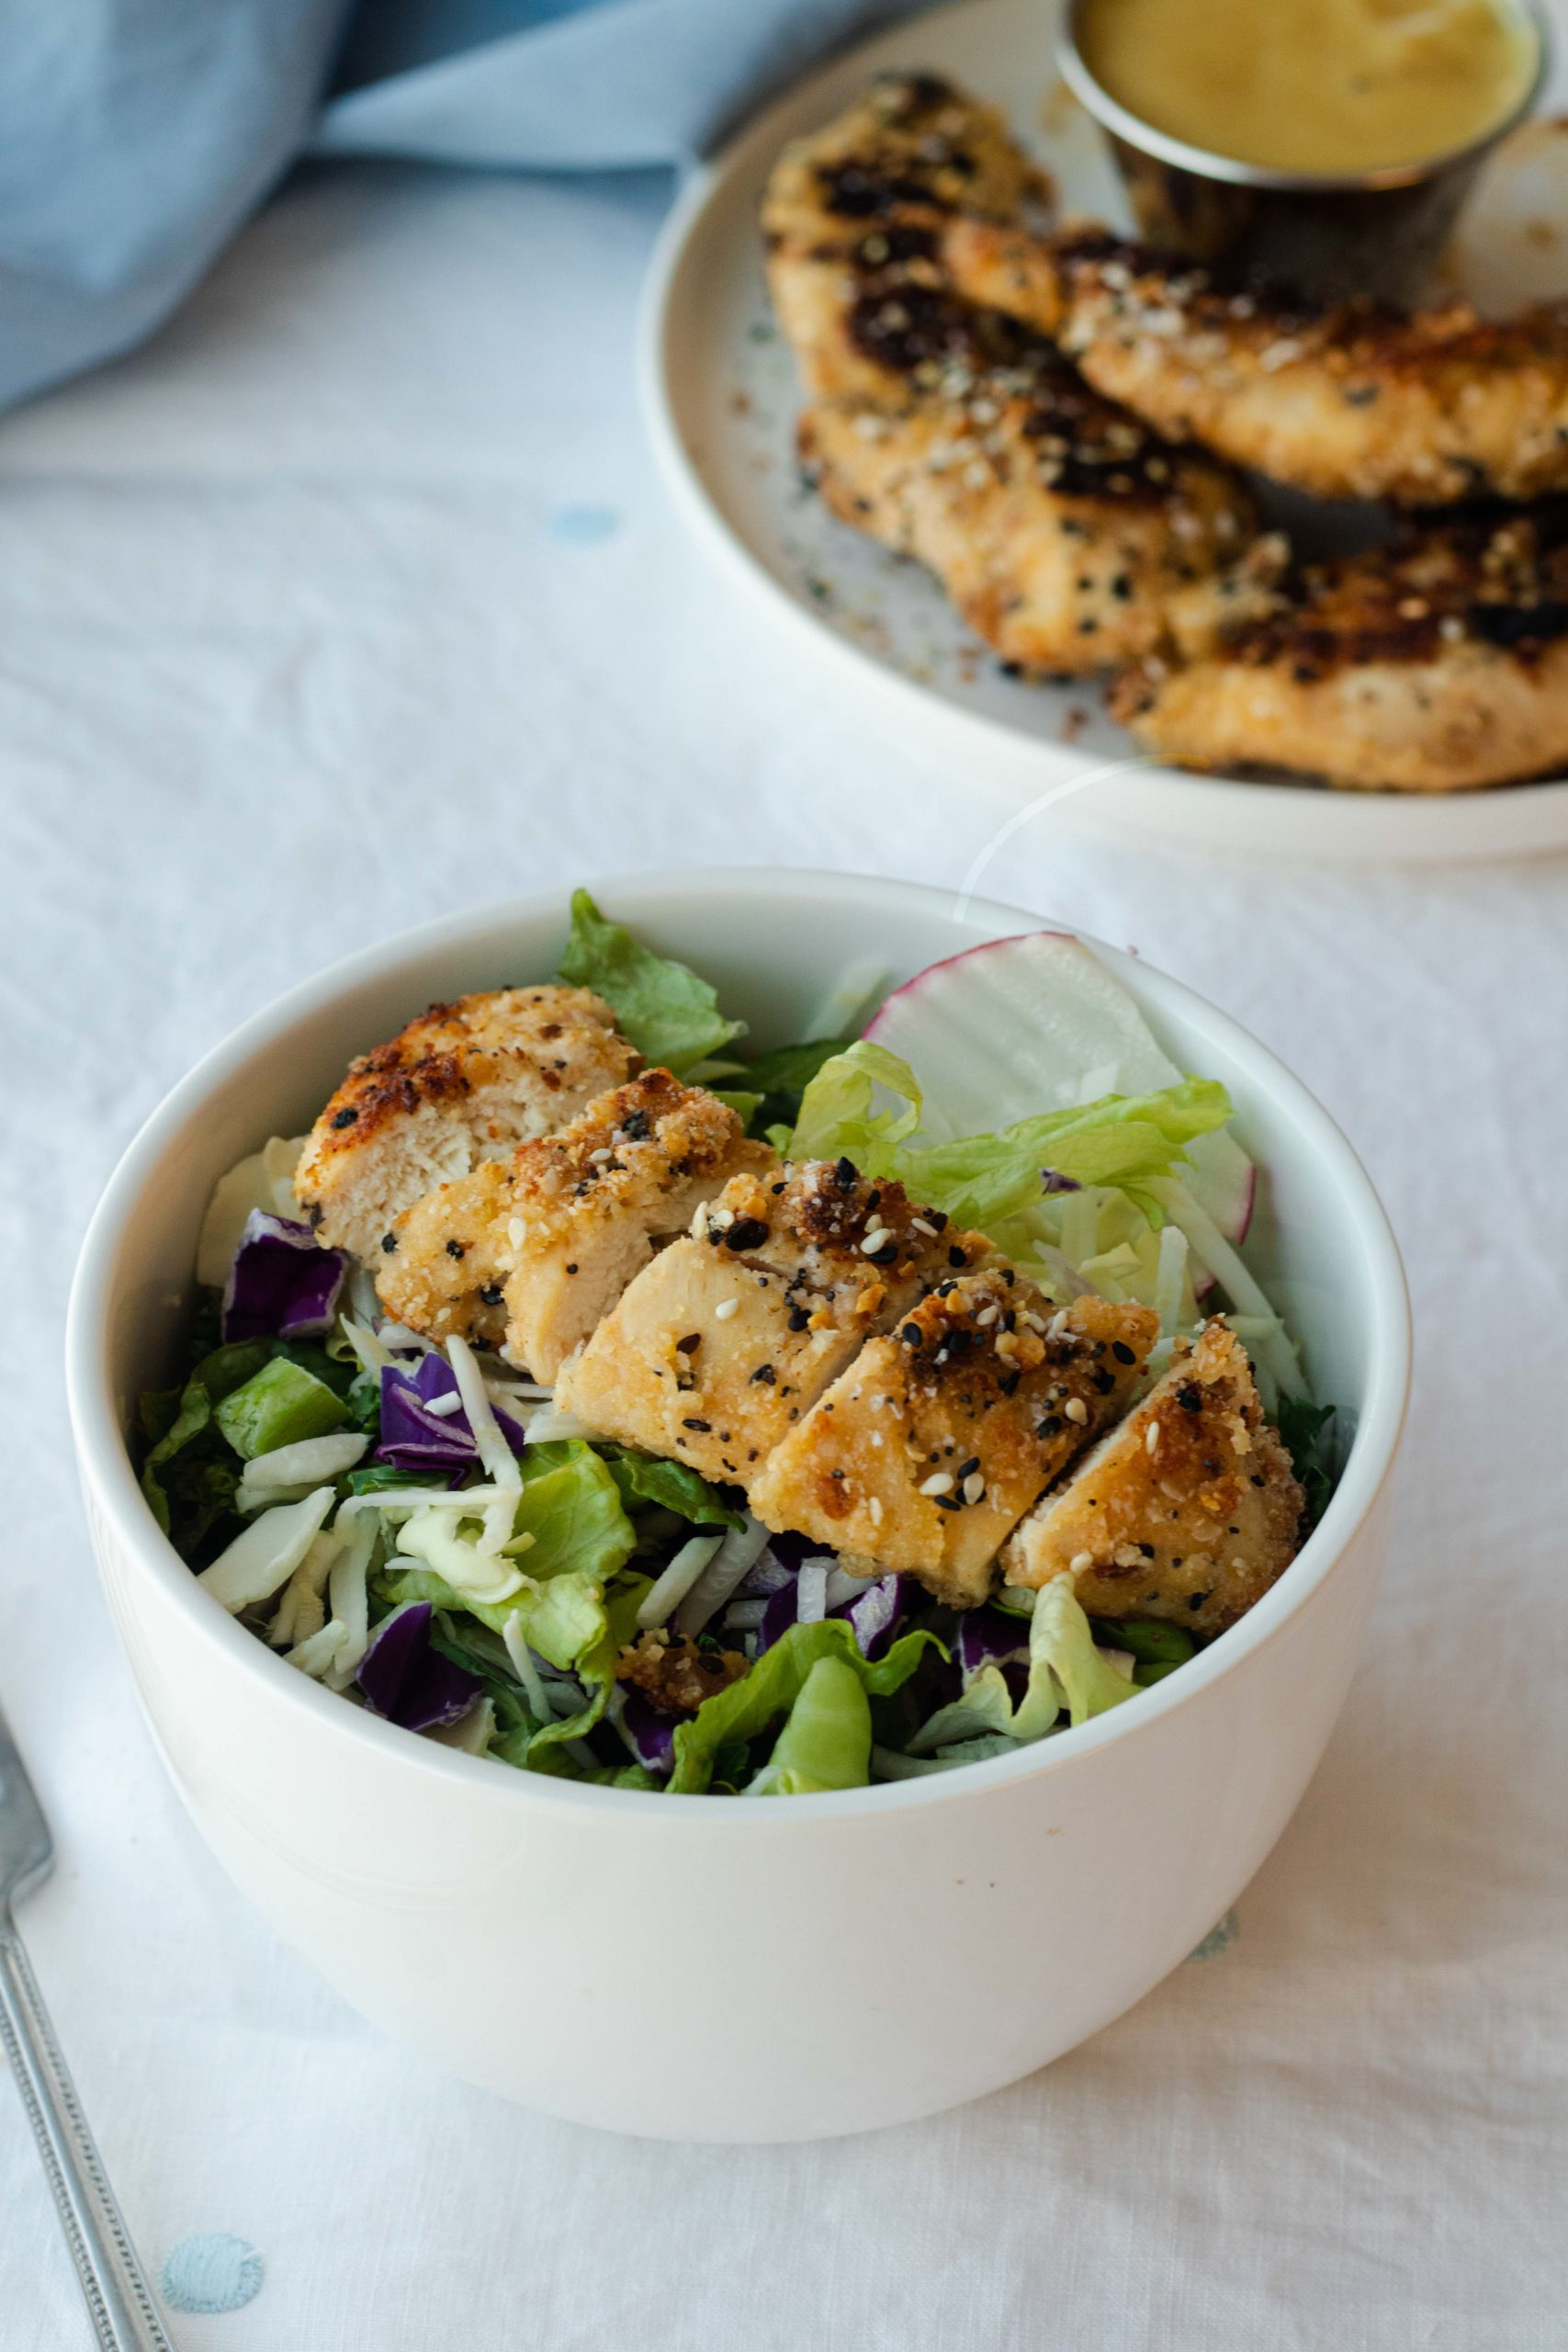 These savory keto chicken strips are breading an almond flour coating that is seasoned well with everything bagel seasoning. Great on salads and wraps!